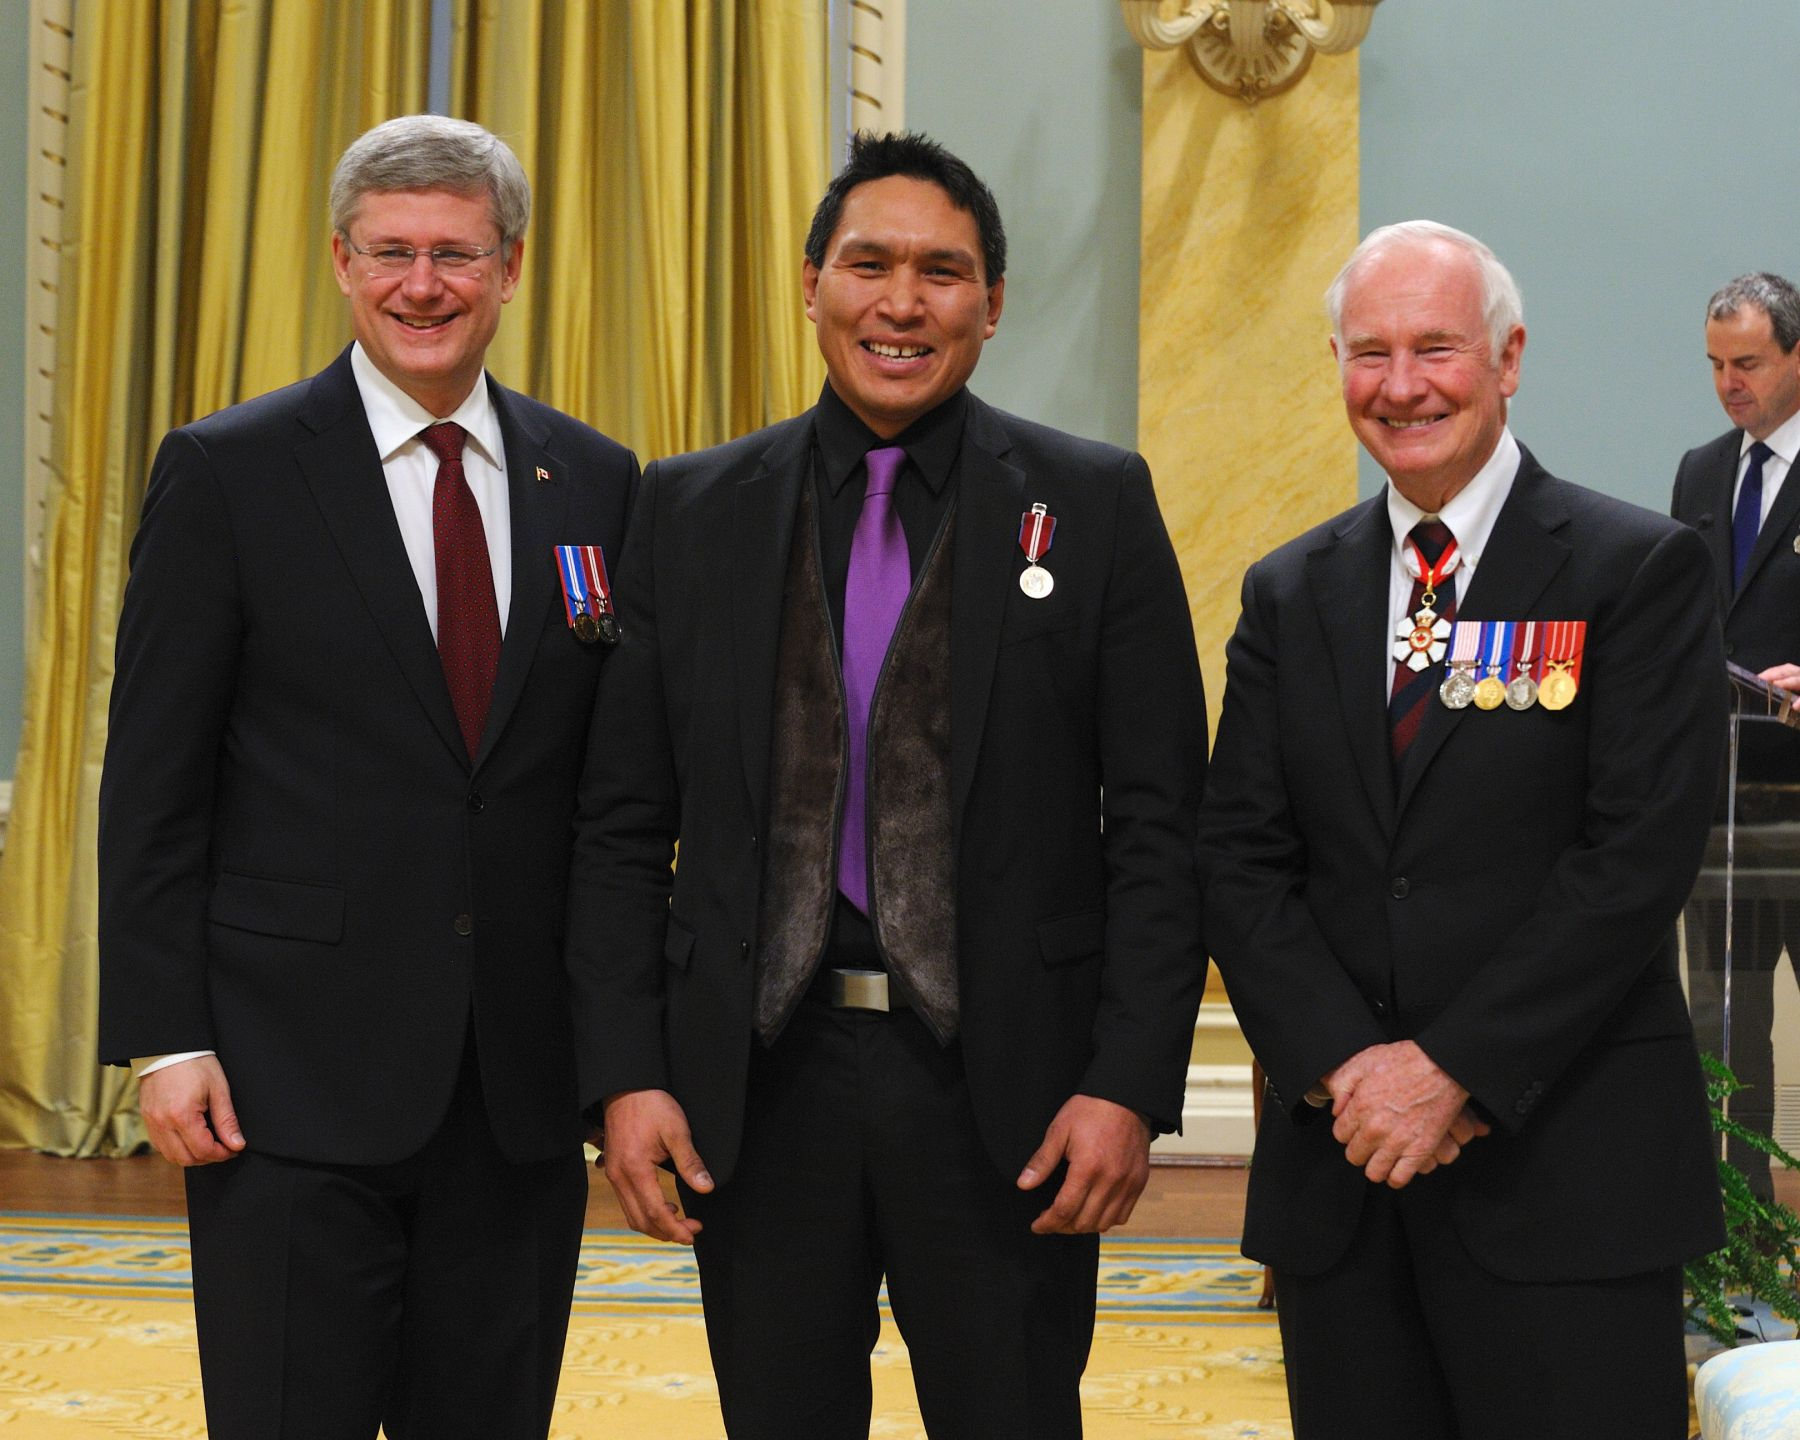 Johnny Issaluk (Iqaluit, Nunavut) was recognized for his contributions towards improving the health and community well-being among Nunavutmiut.